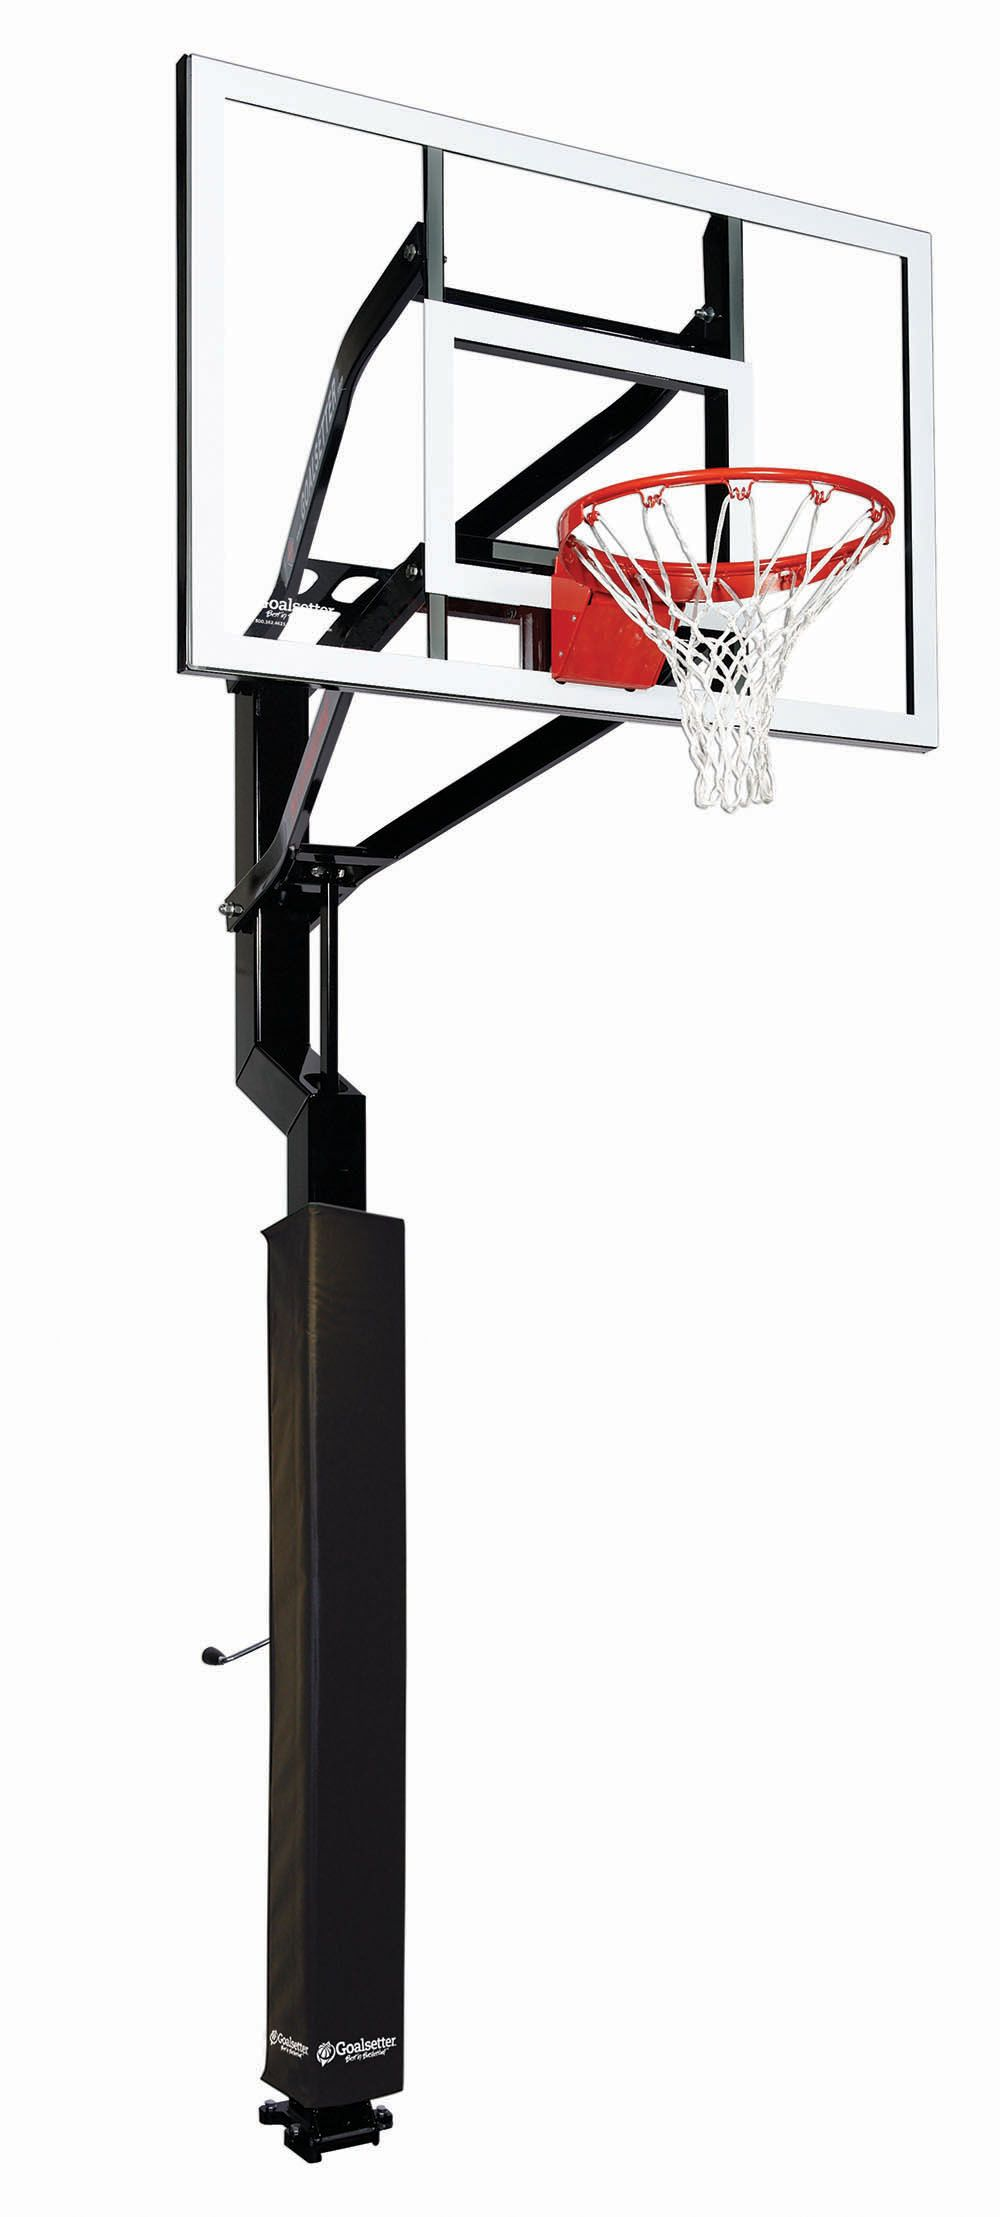 Designed With The Growing Family In Mind The All Star Will Look Great In Your Driveway Matching The Strength And Basketball Systems Basketball Net Basketball